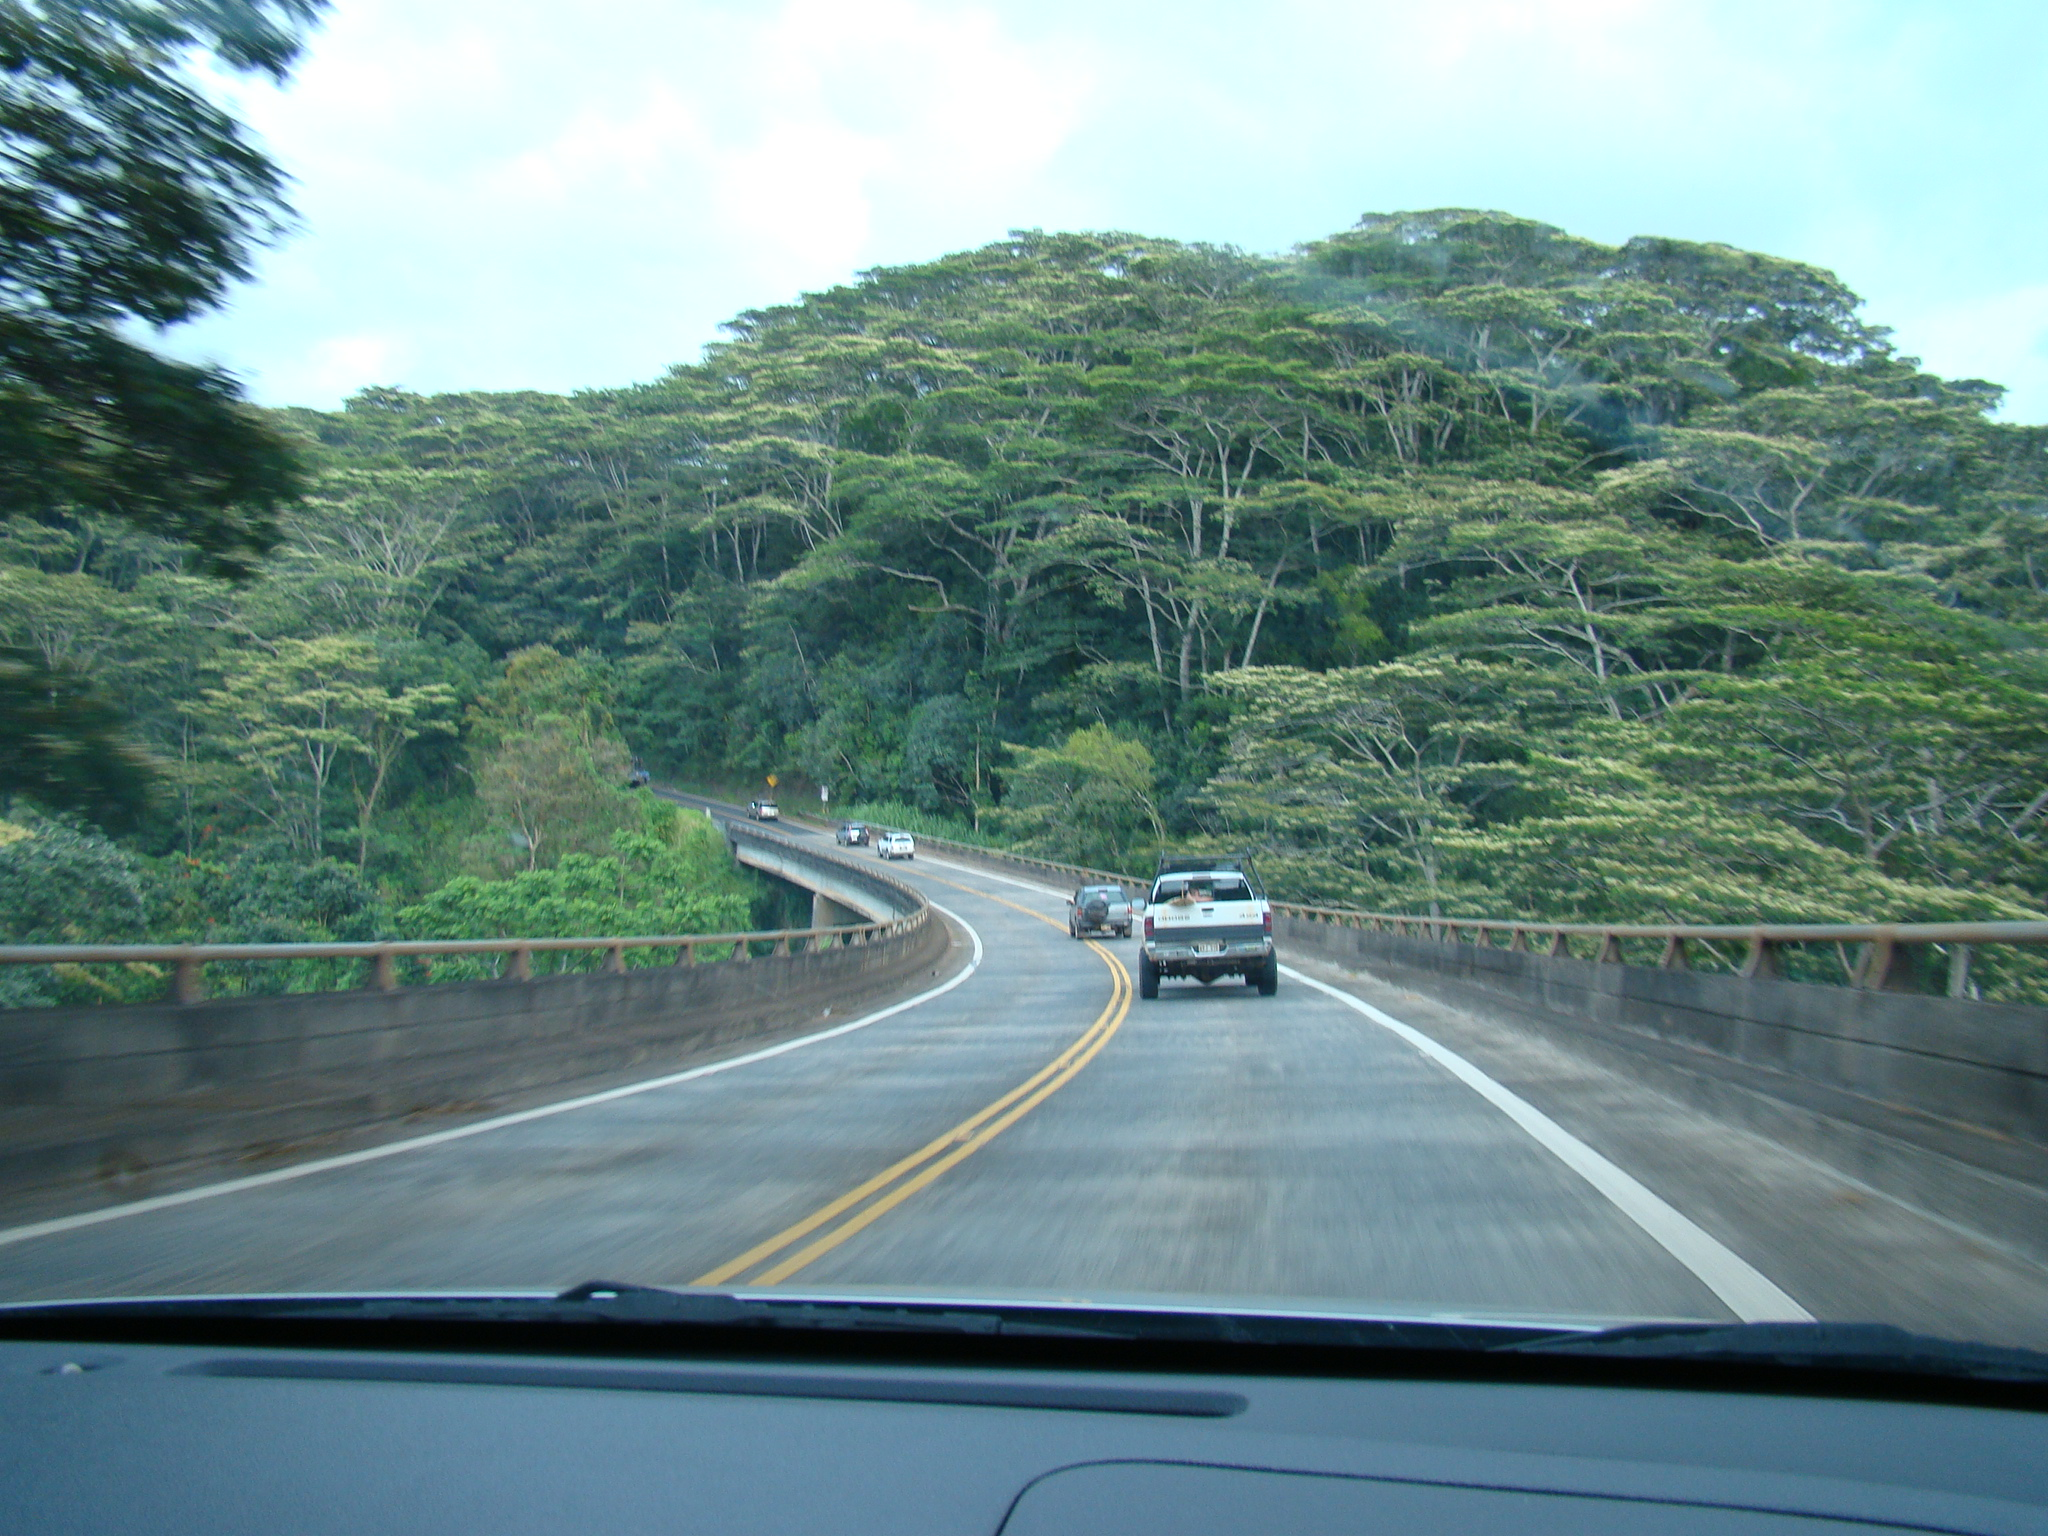 Pretty Curve after Leaving Hanalei